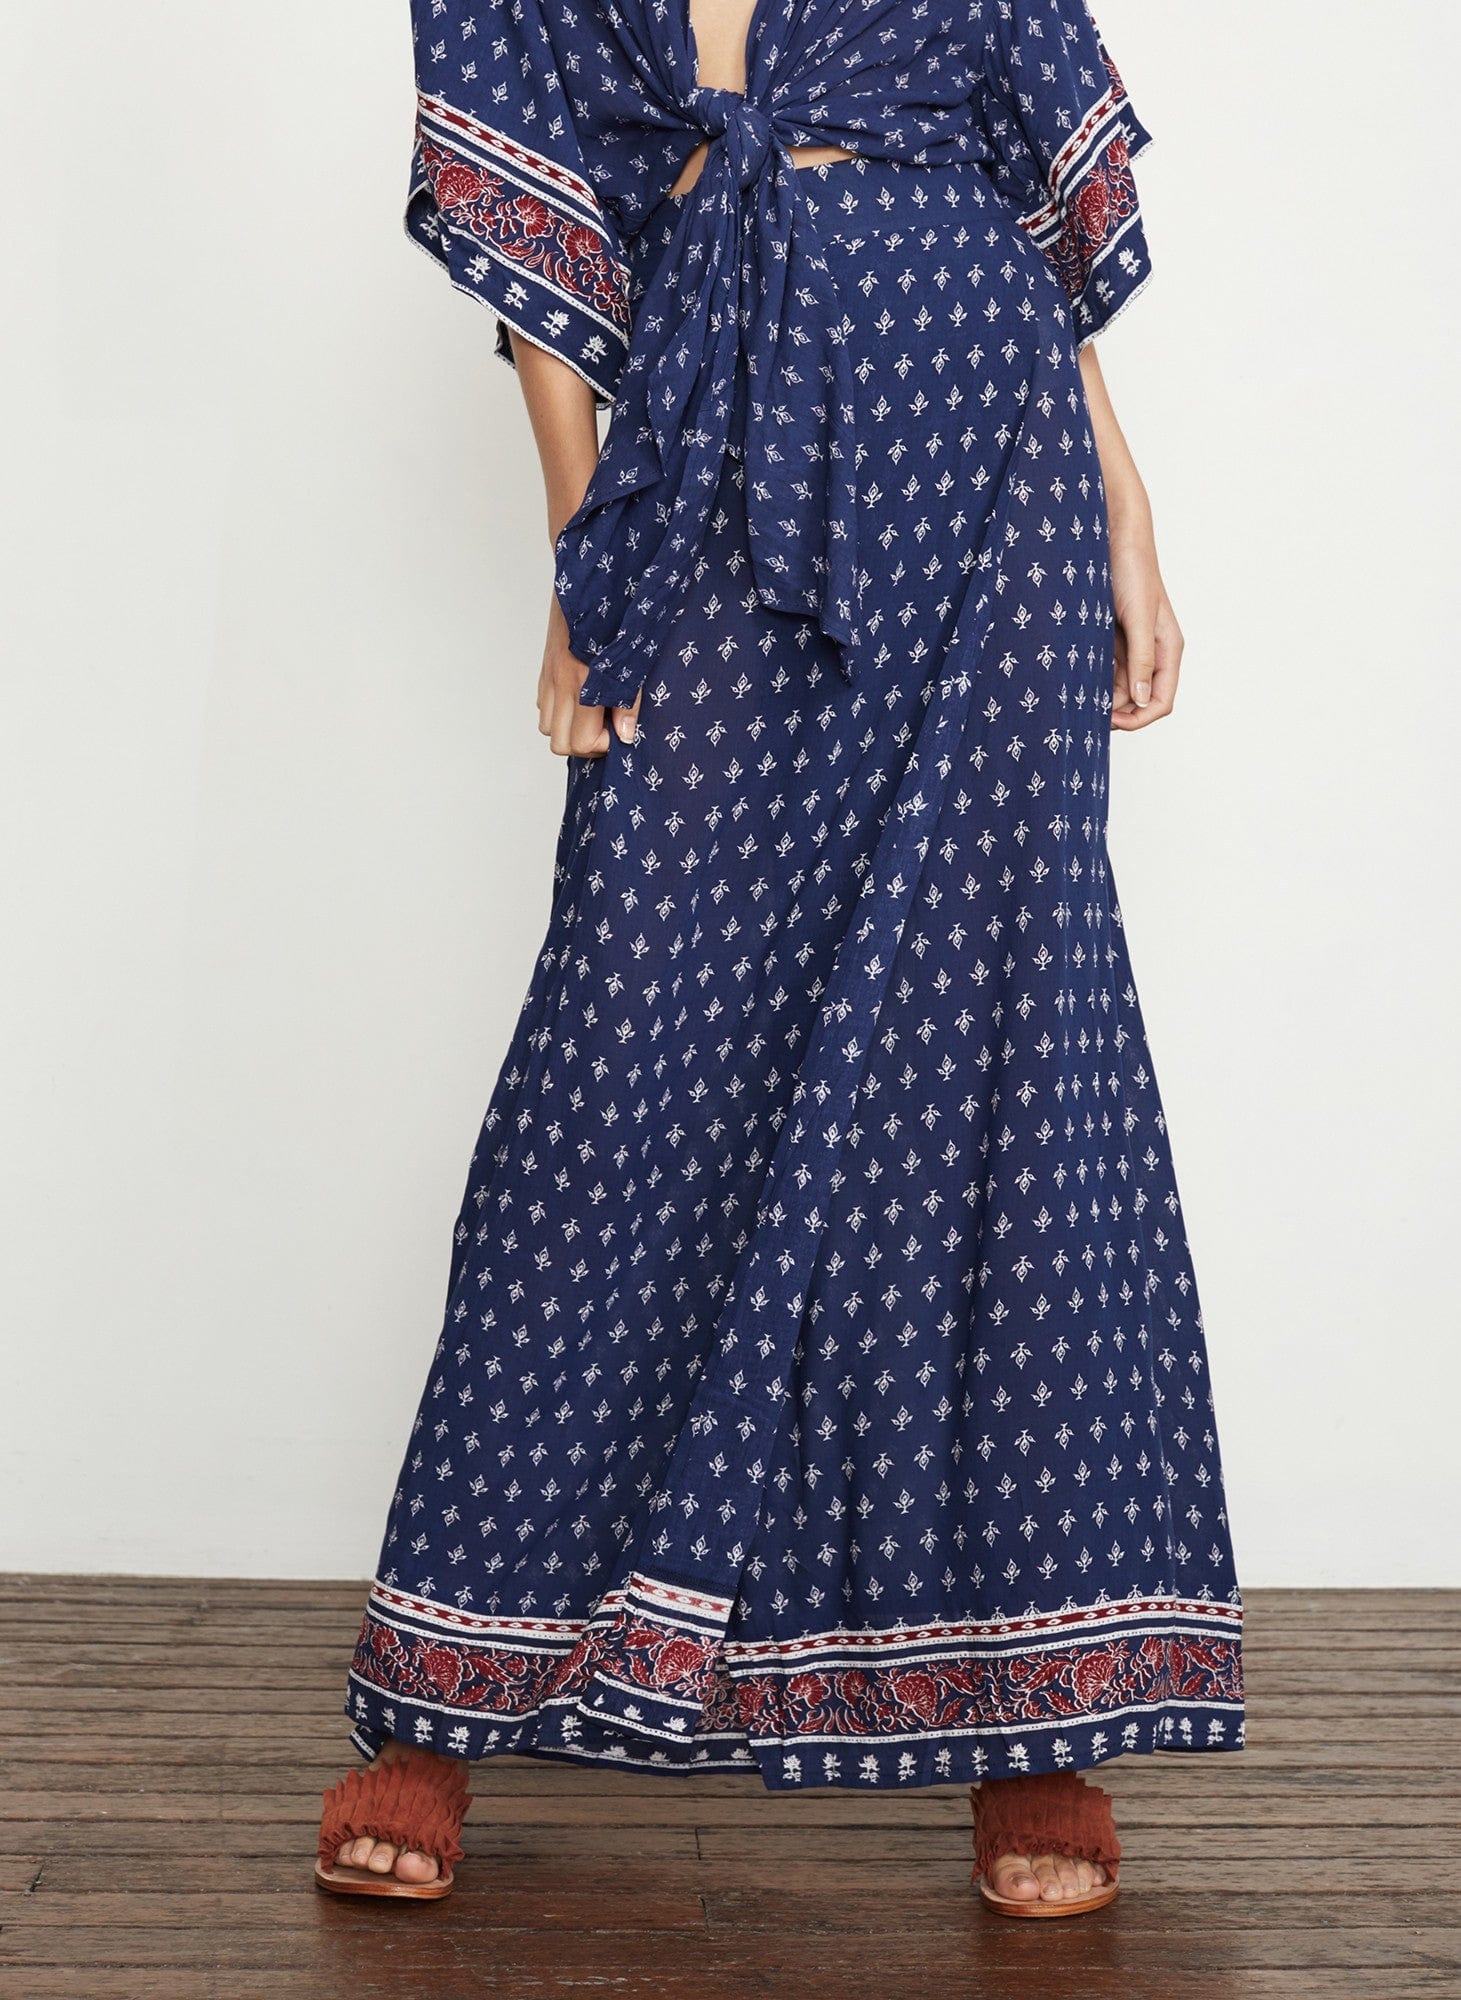 GYPSY PRINT - TERRE MAXI SKIRT - FINAL SALE